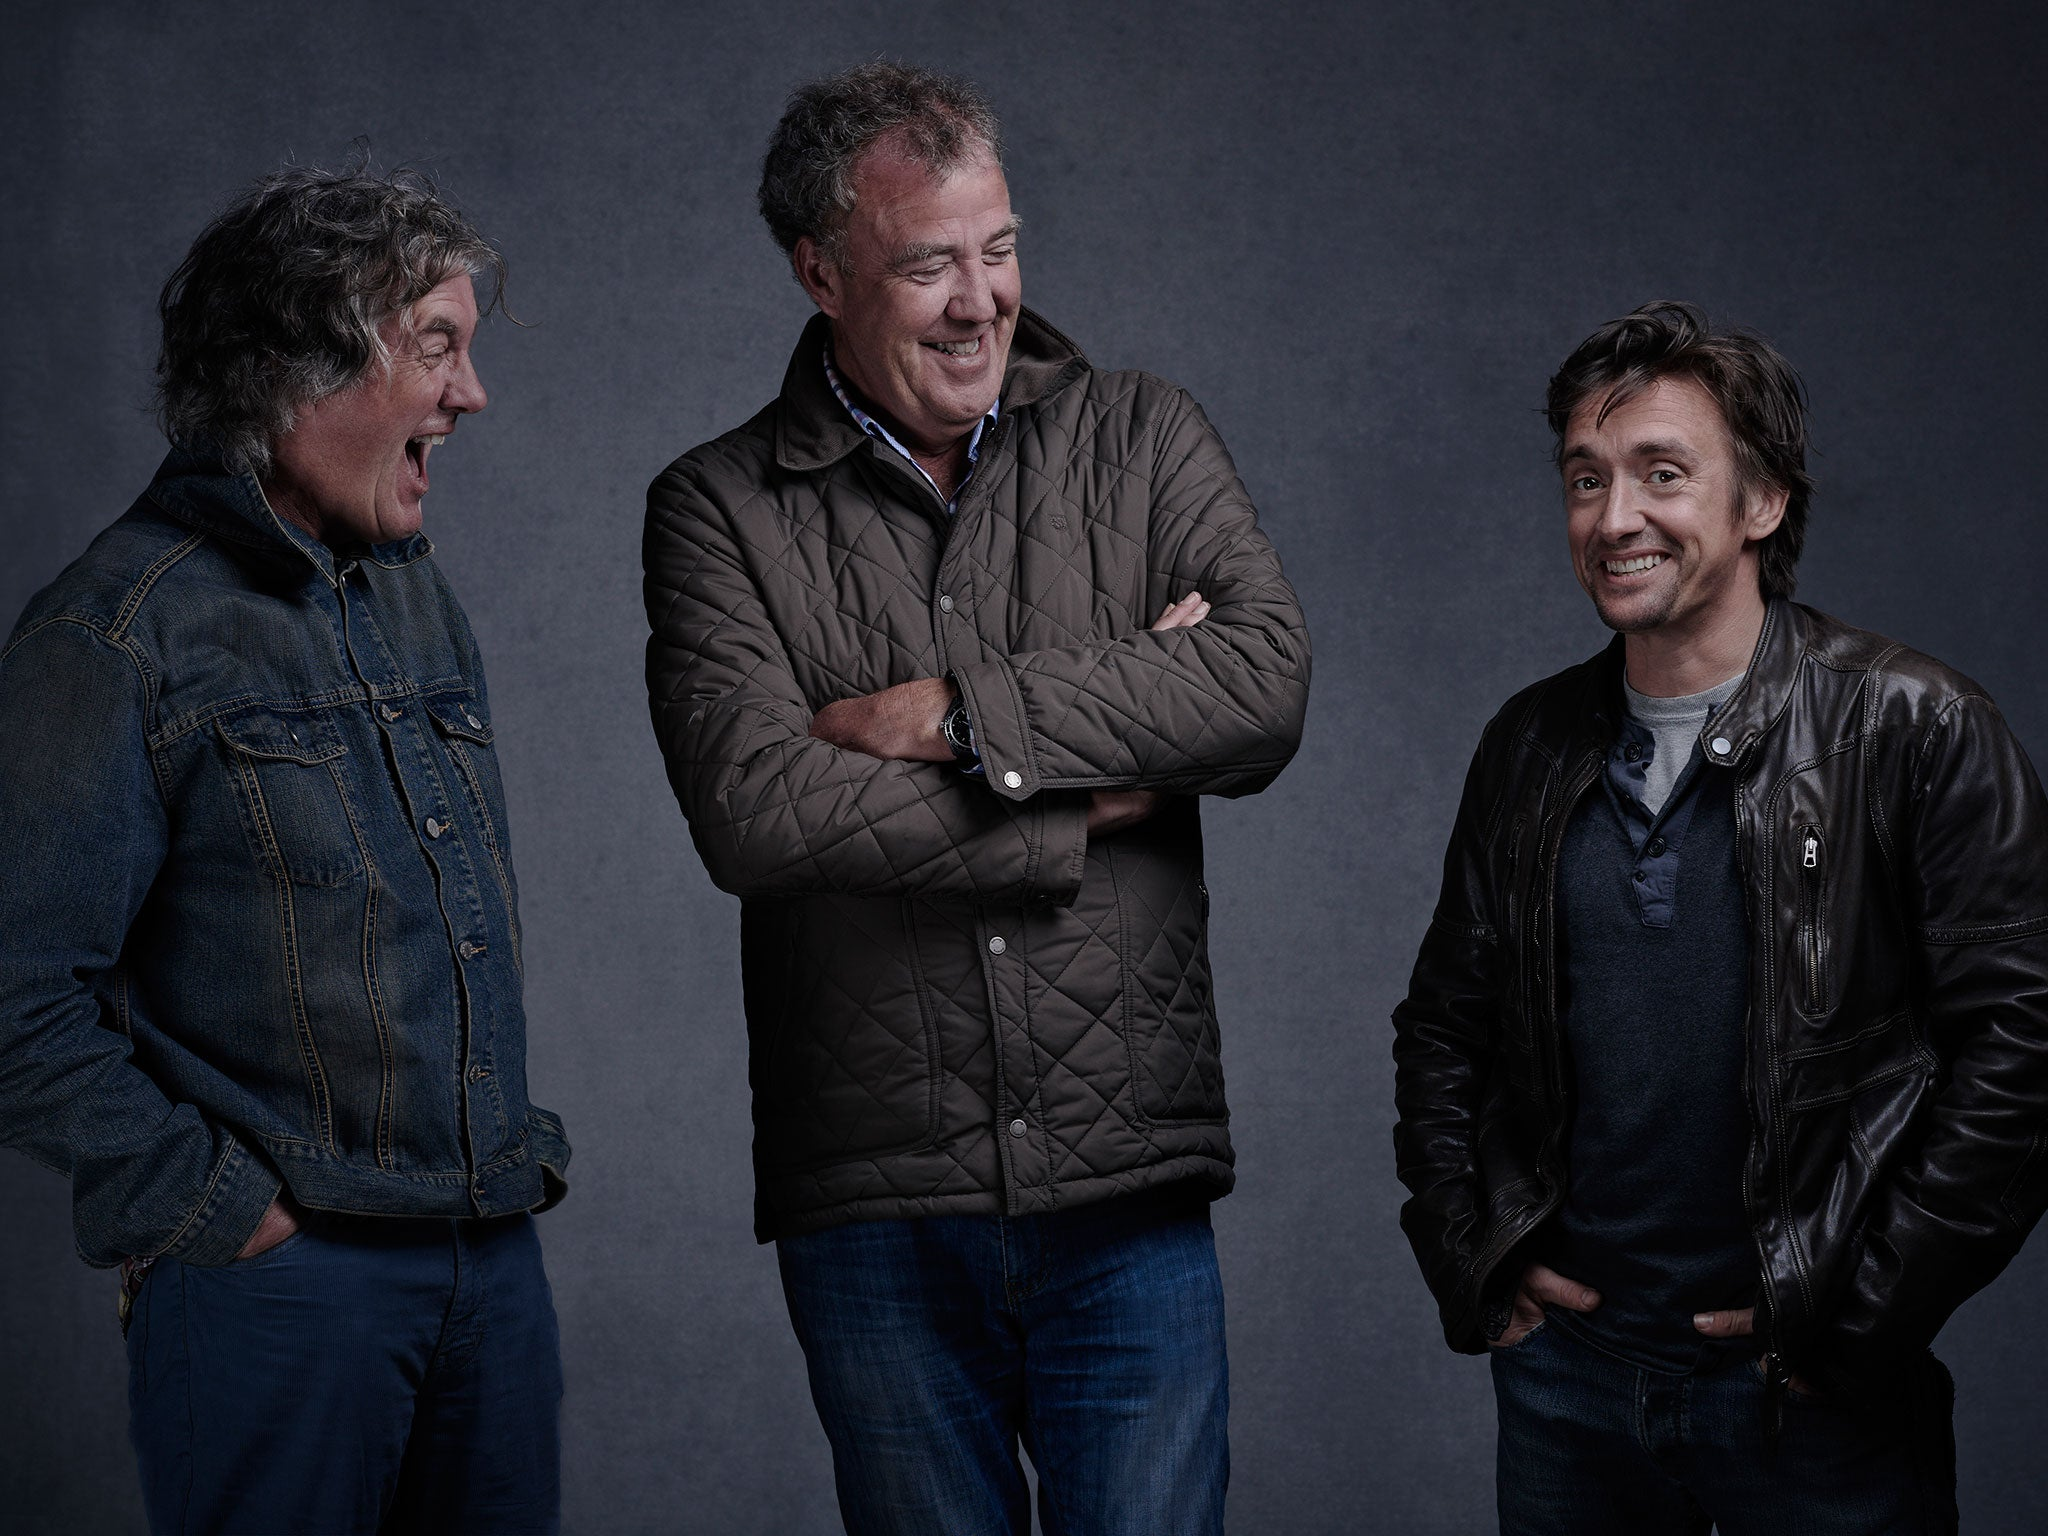 Top Gear trio crack jokes about BBC 'fracas' and hint at new American show